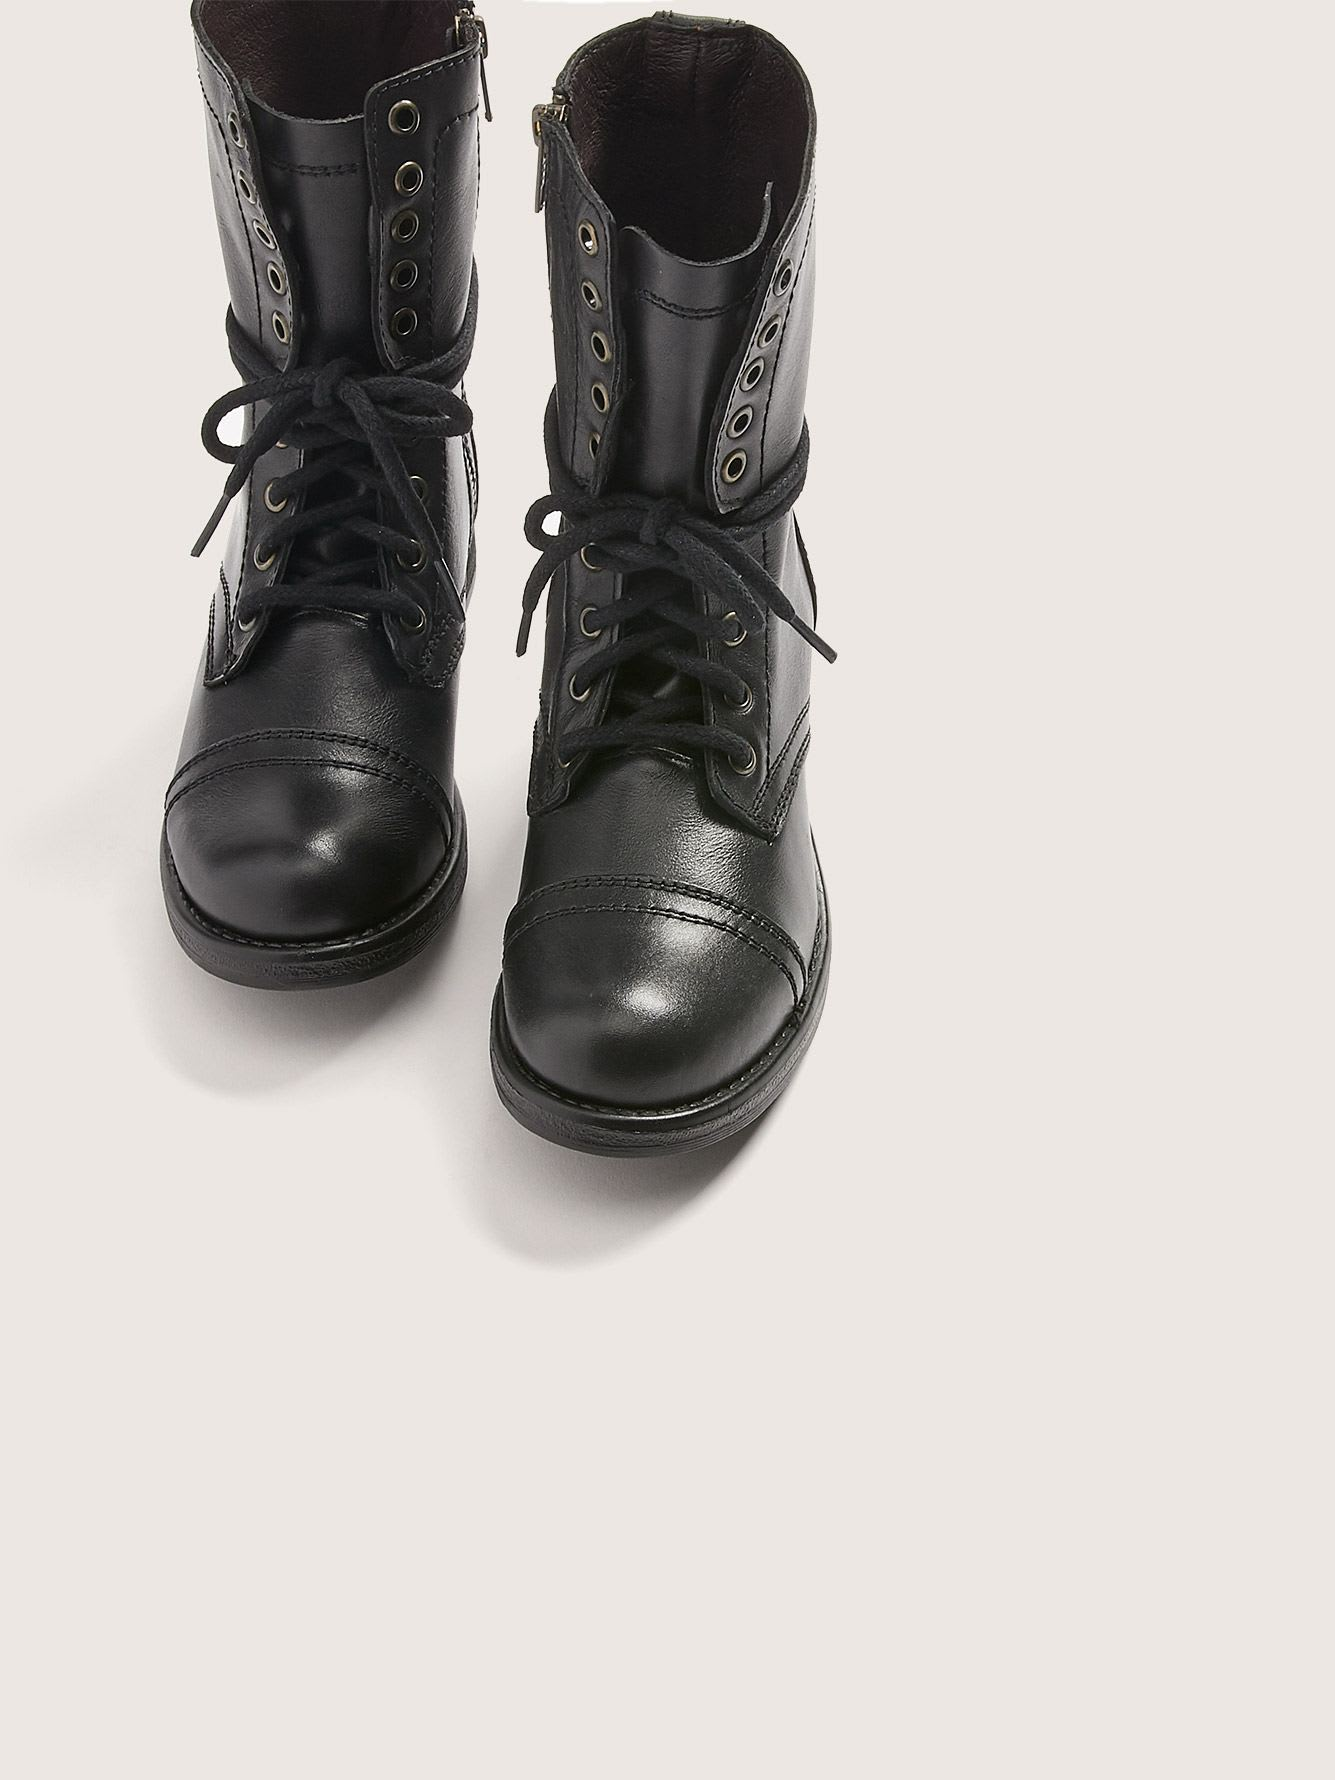 Wide Width Military Booties - Steve Madden